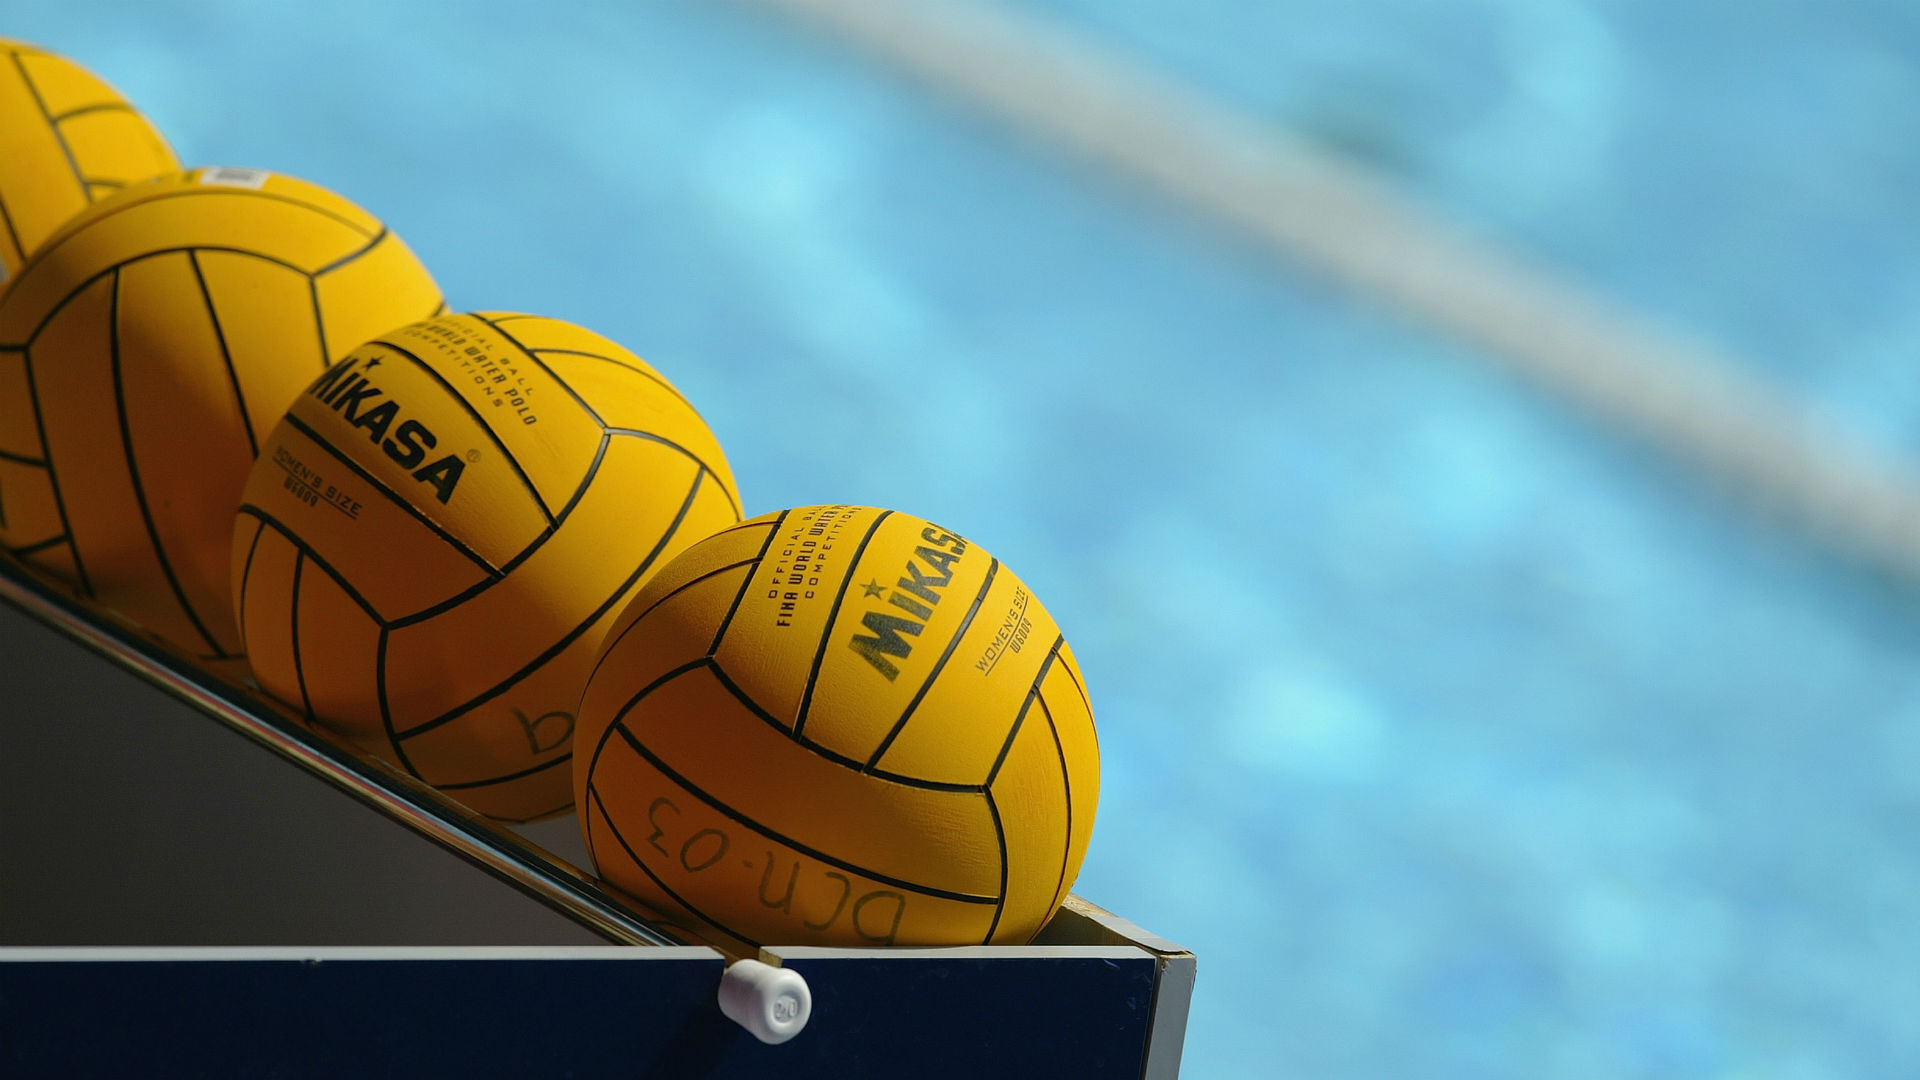 American water polo player describes terrifying balcony collapse that killed 2